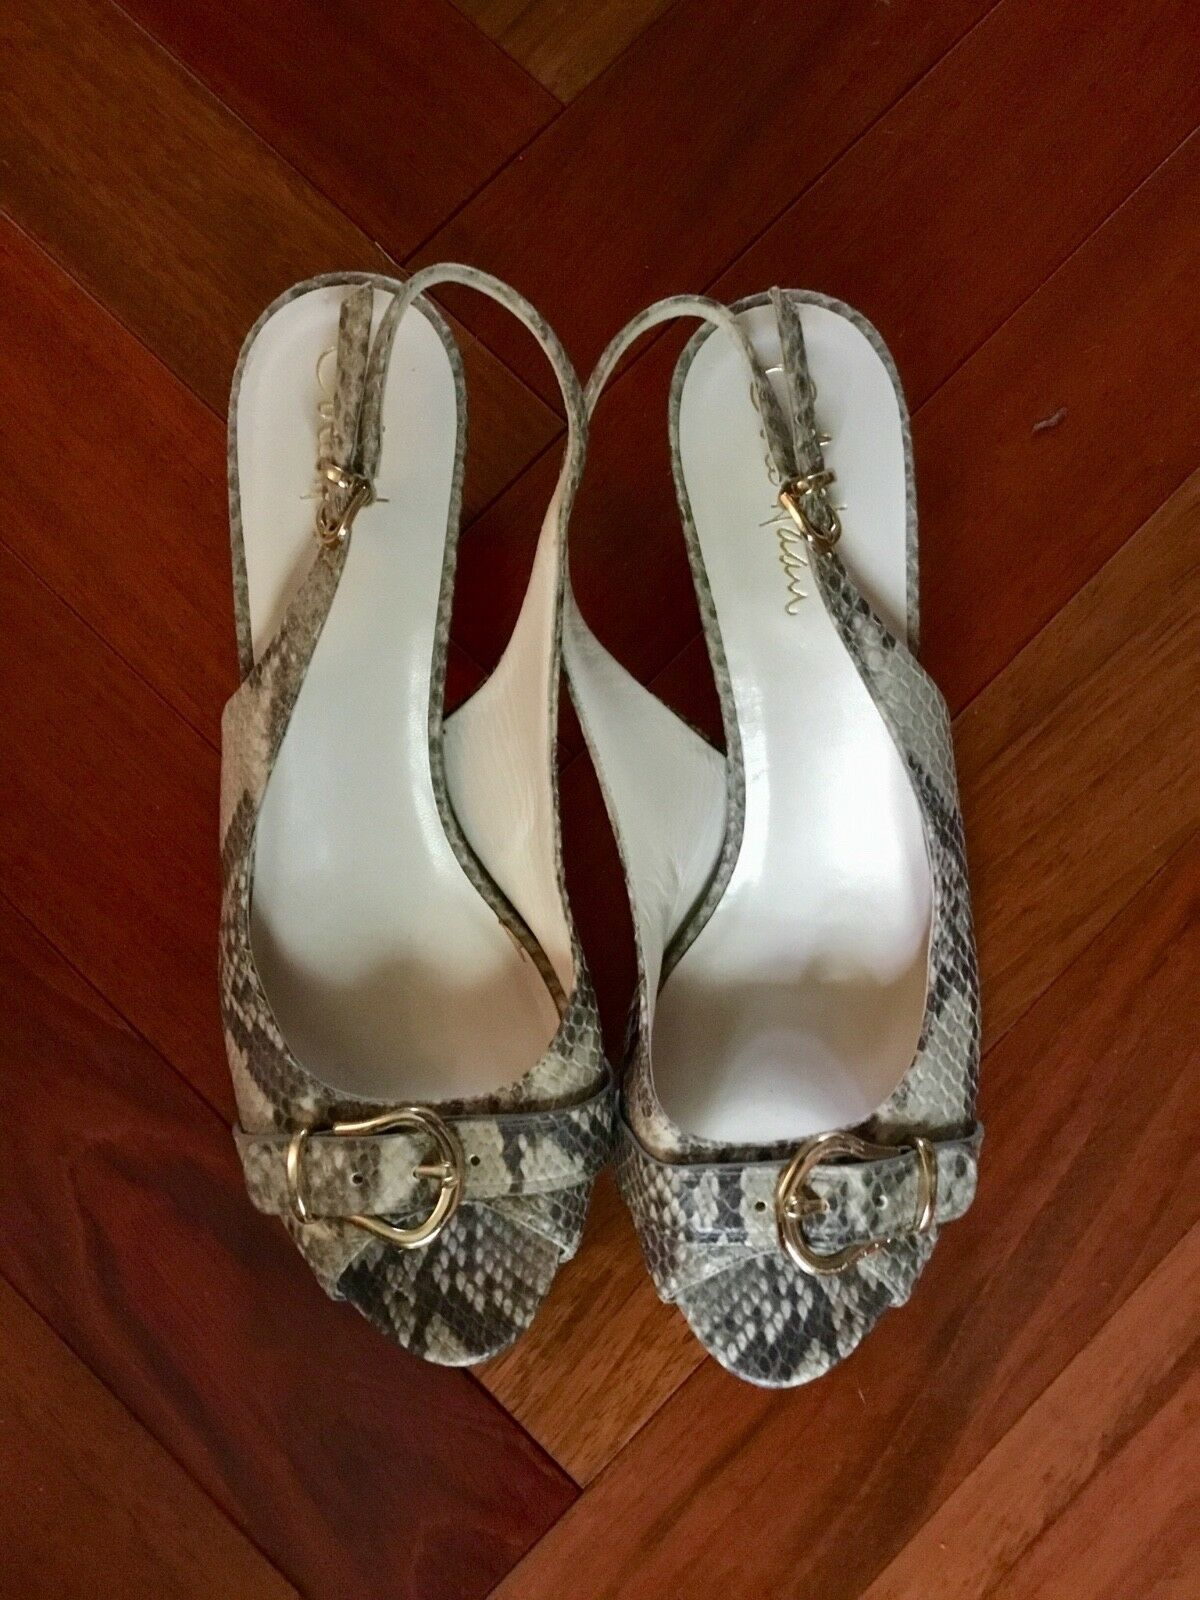 Cole Leather Haan Snake Reptile Pattern Leather Cole Slingback Heel Shoes Sz 9 M 16d373